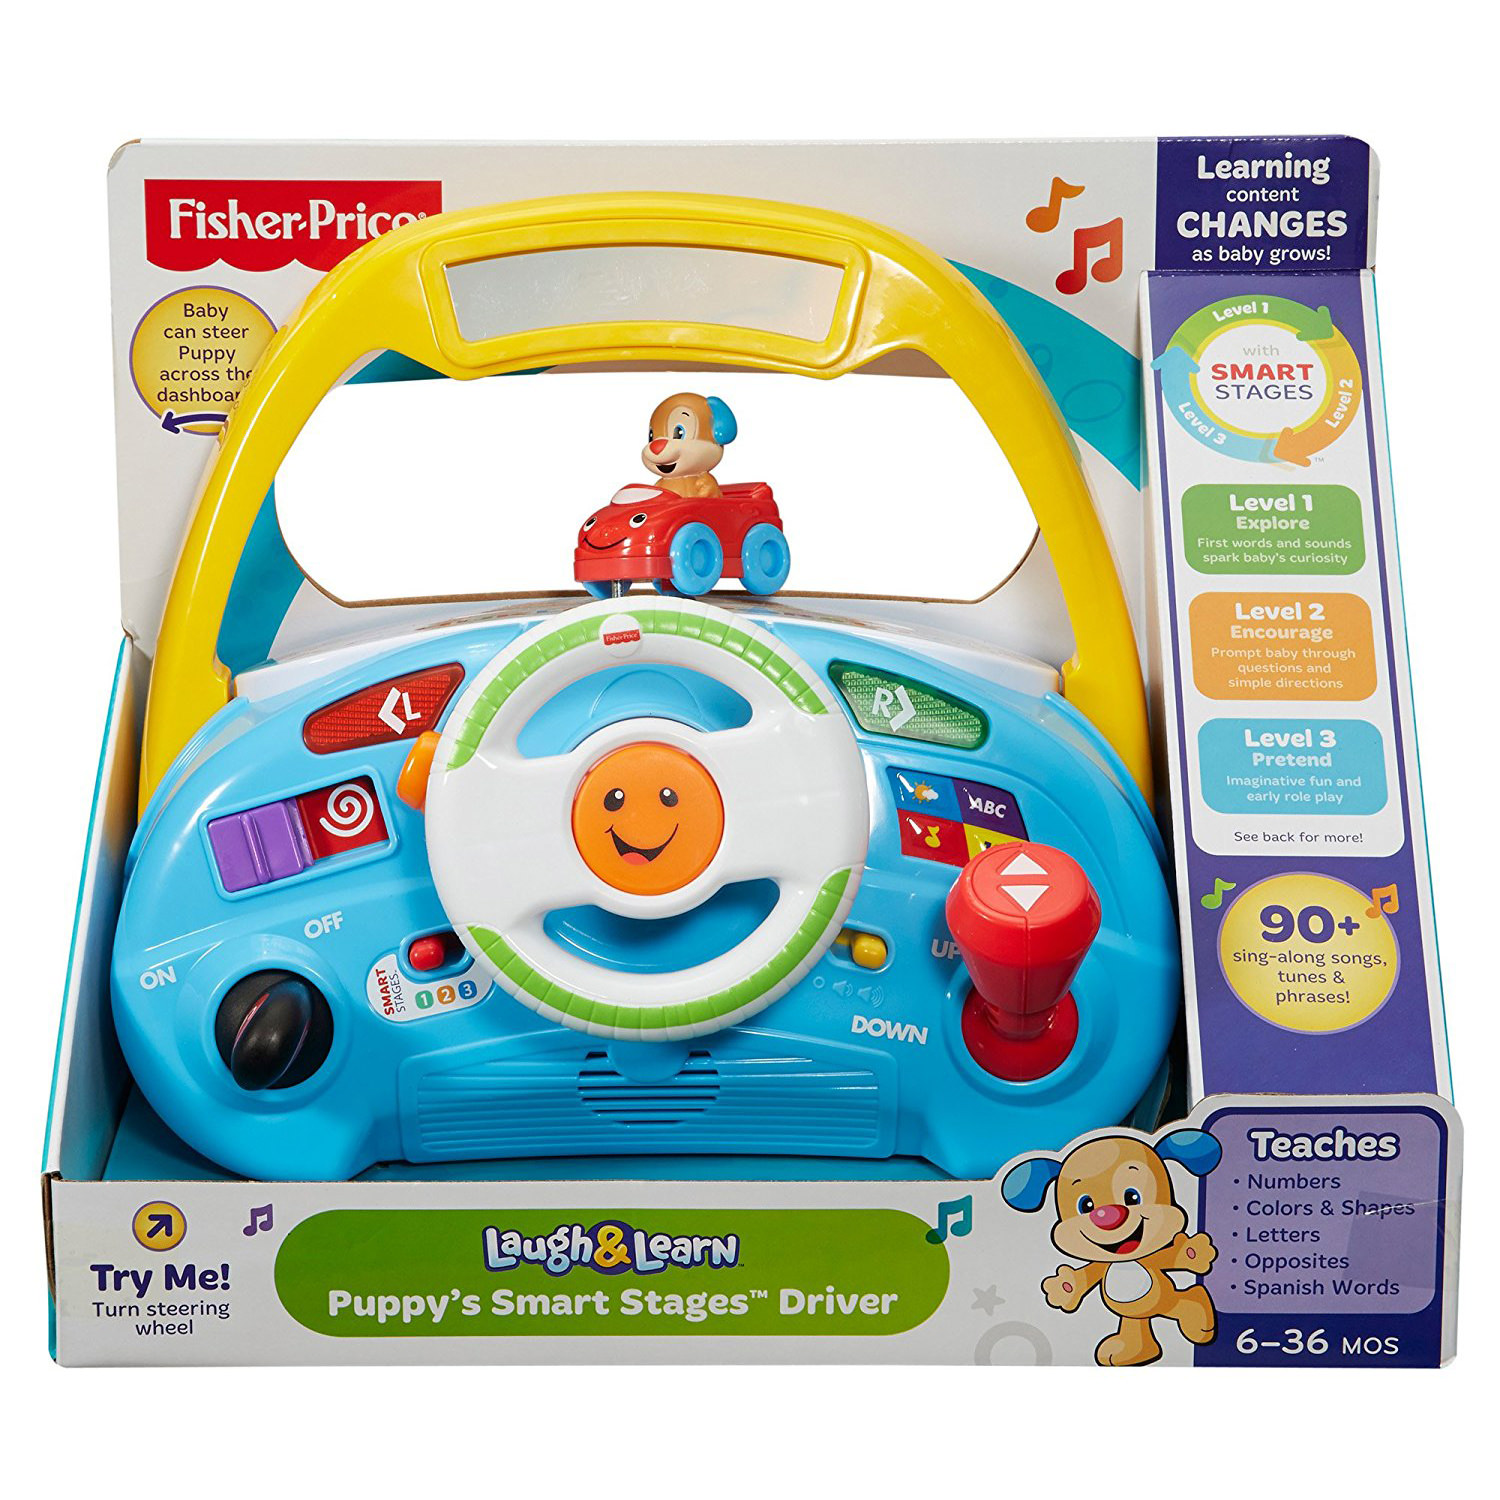 Walmart Toys Puppy : Fisher price laugh learn puppy s smart stages driver at